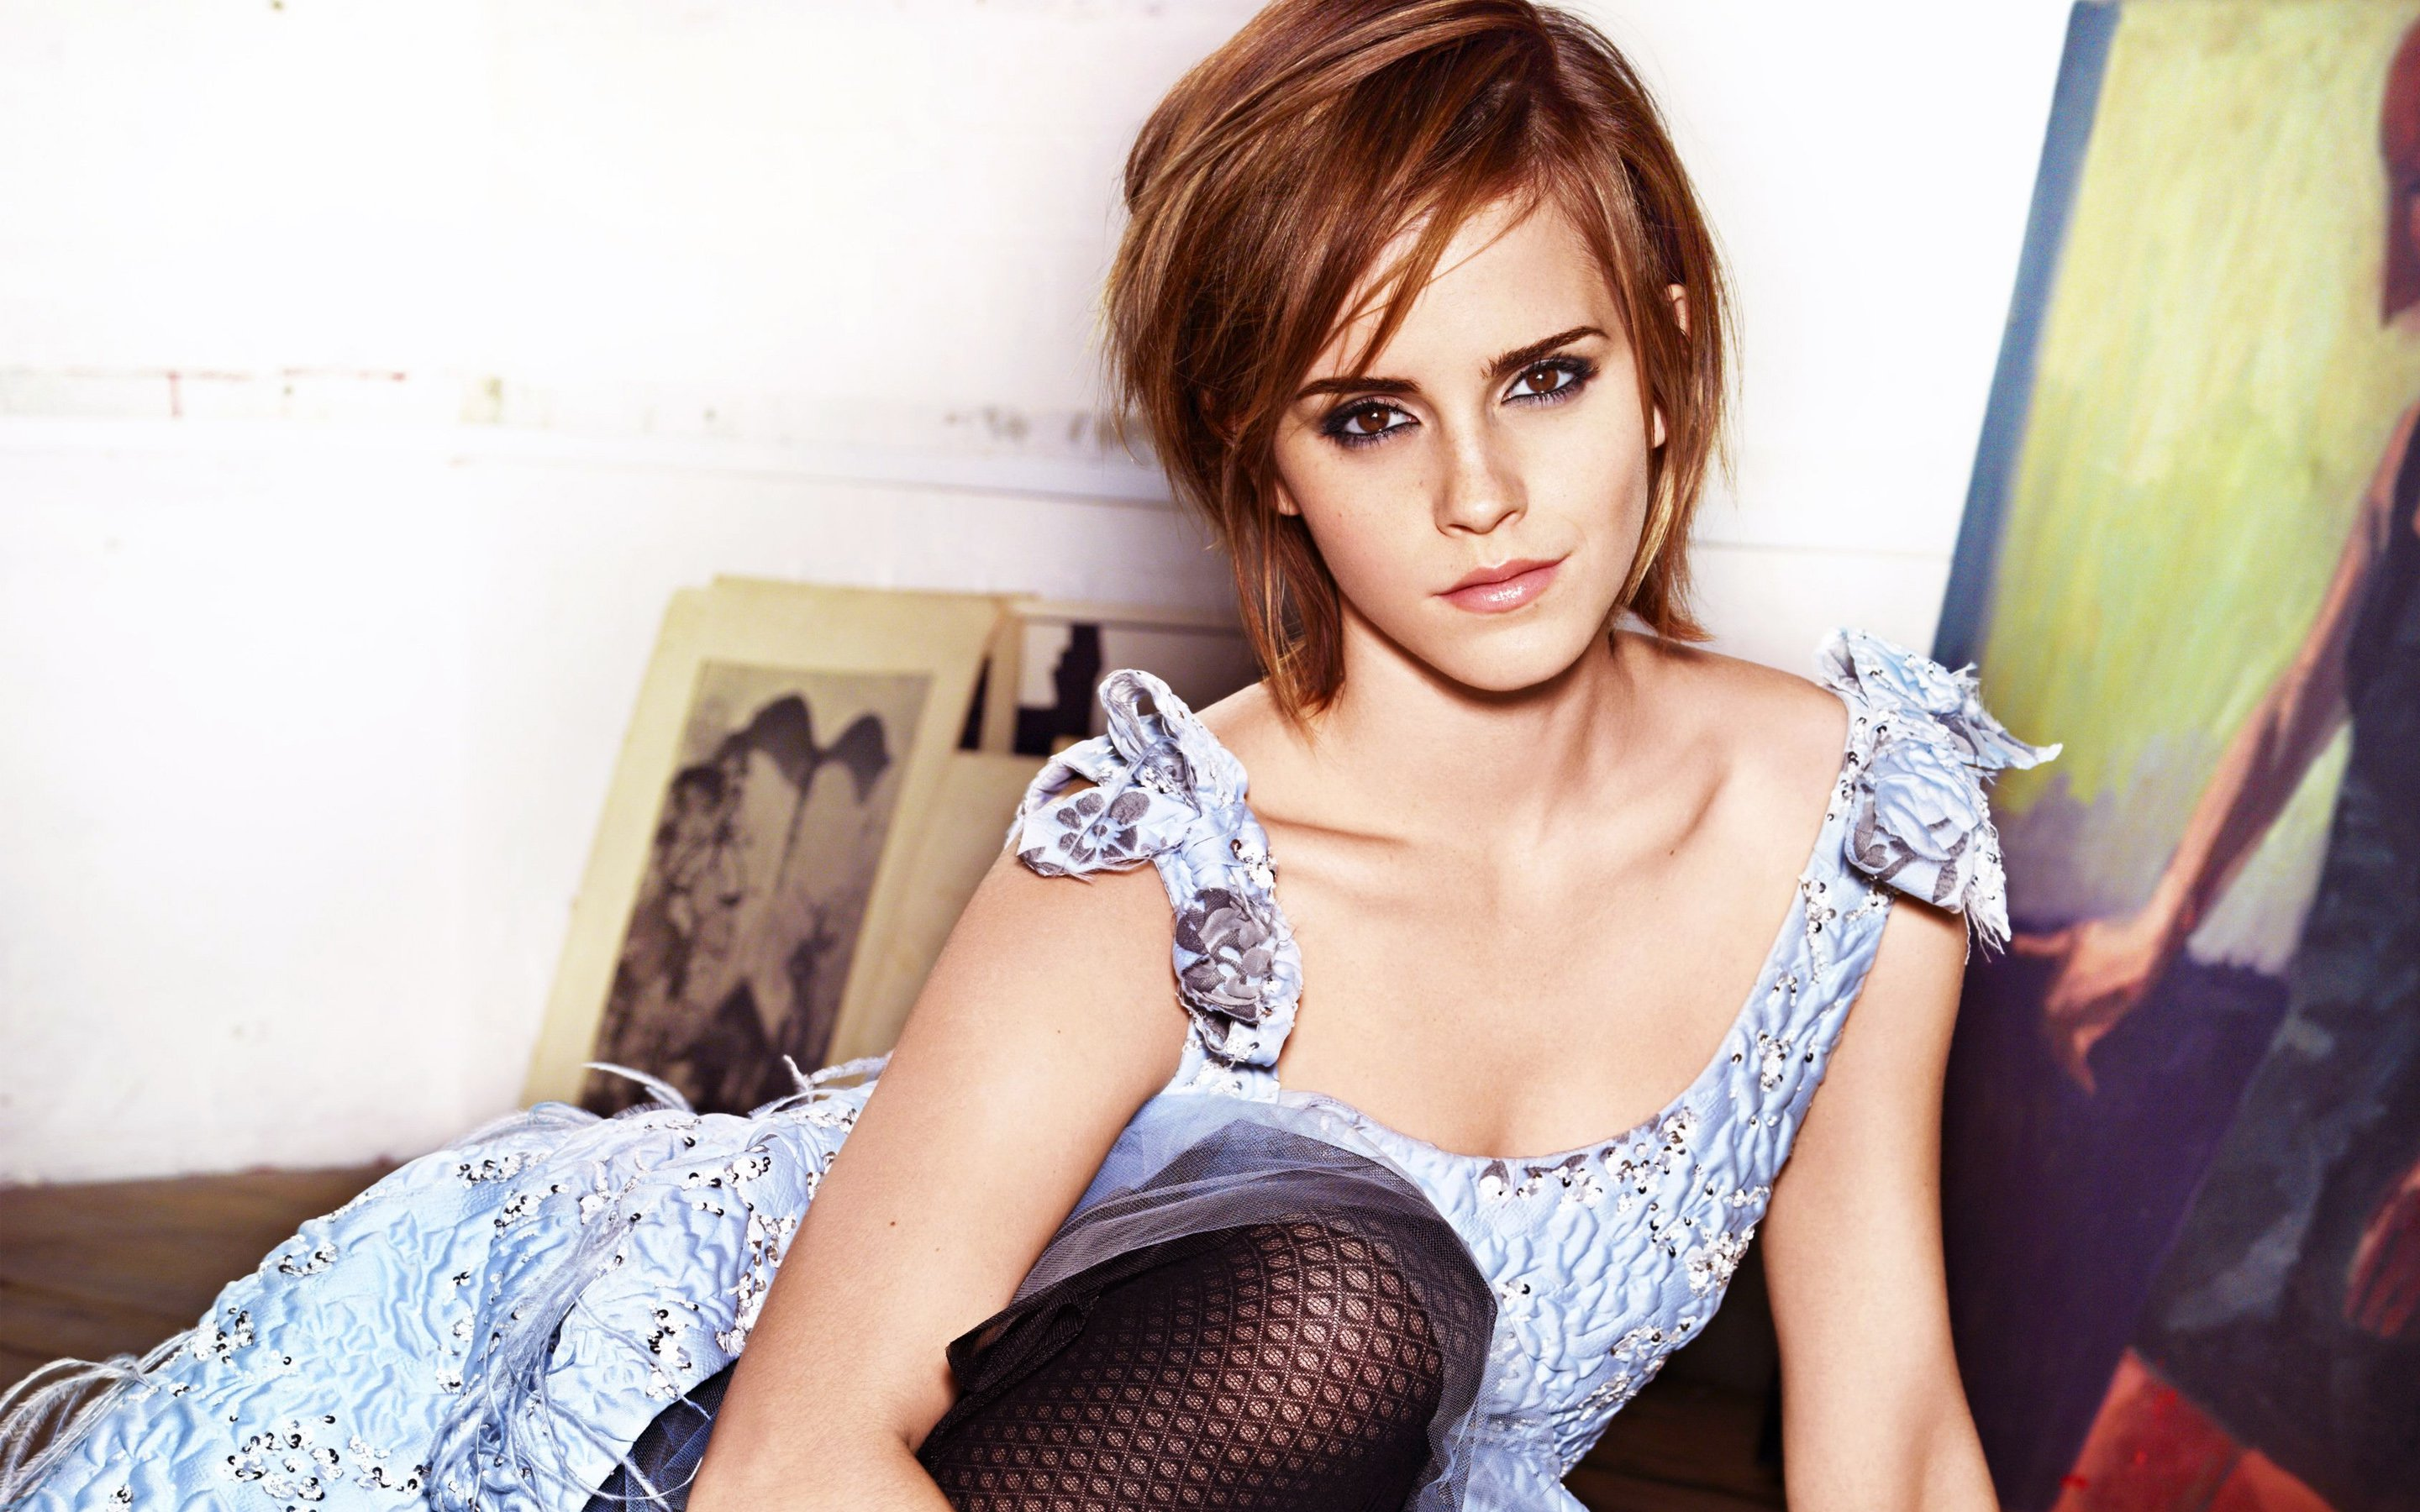 a-guide-to-cool-emma-watson-photos-best-of-folkr-35